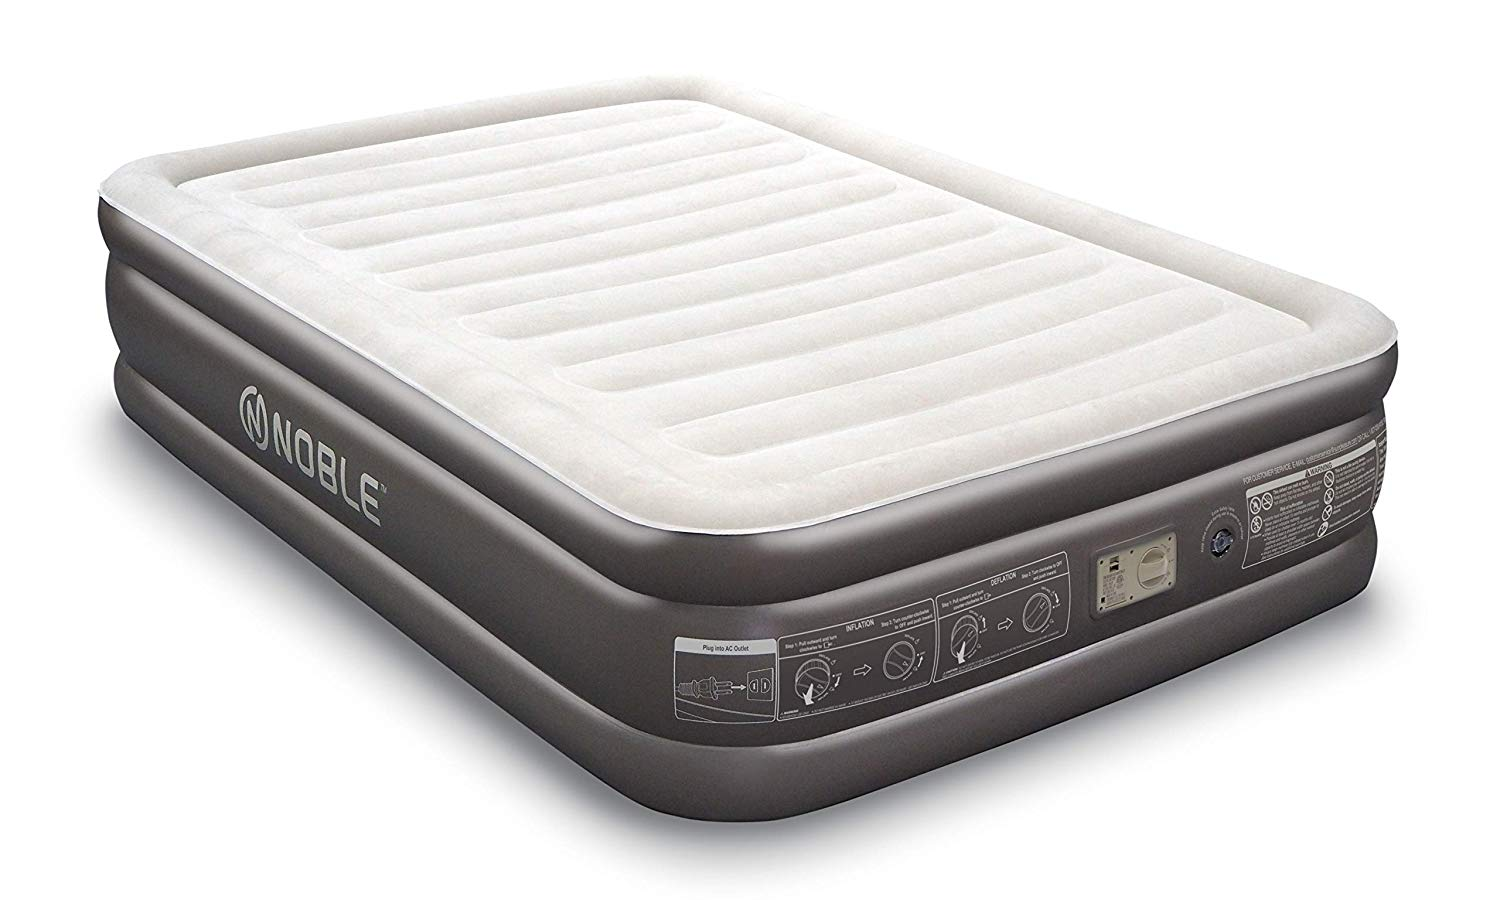 reputable site 722f9 9c7be Noble QUEEN SIZE Comfort DOUBLE HIGH Raised Air Mattress ...